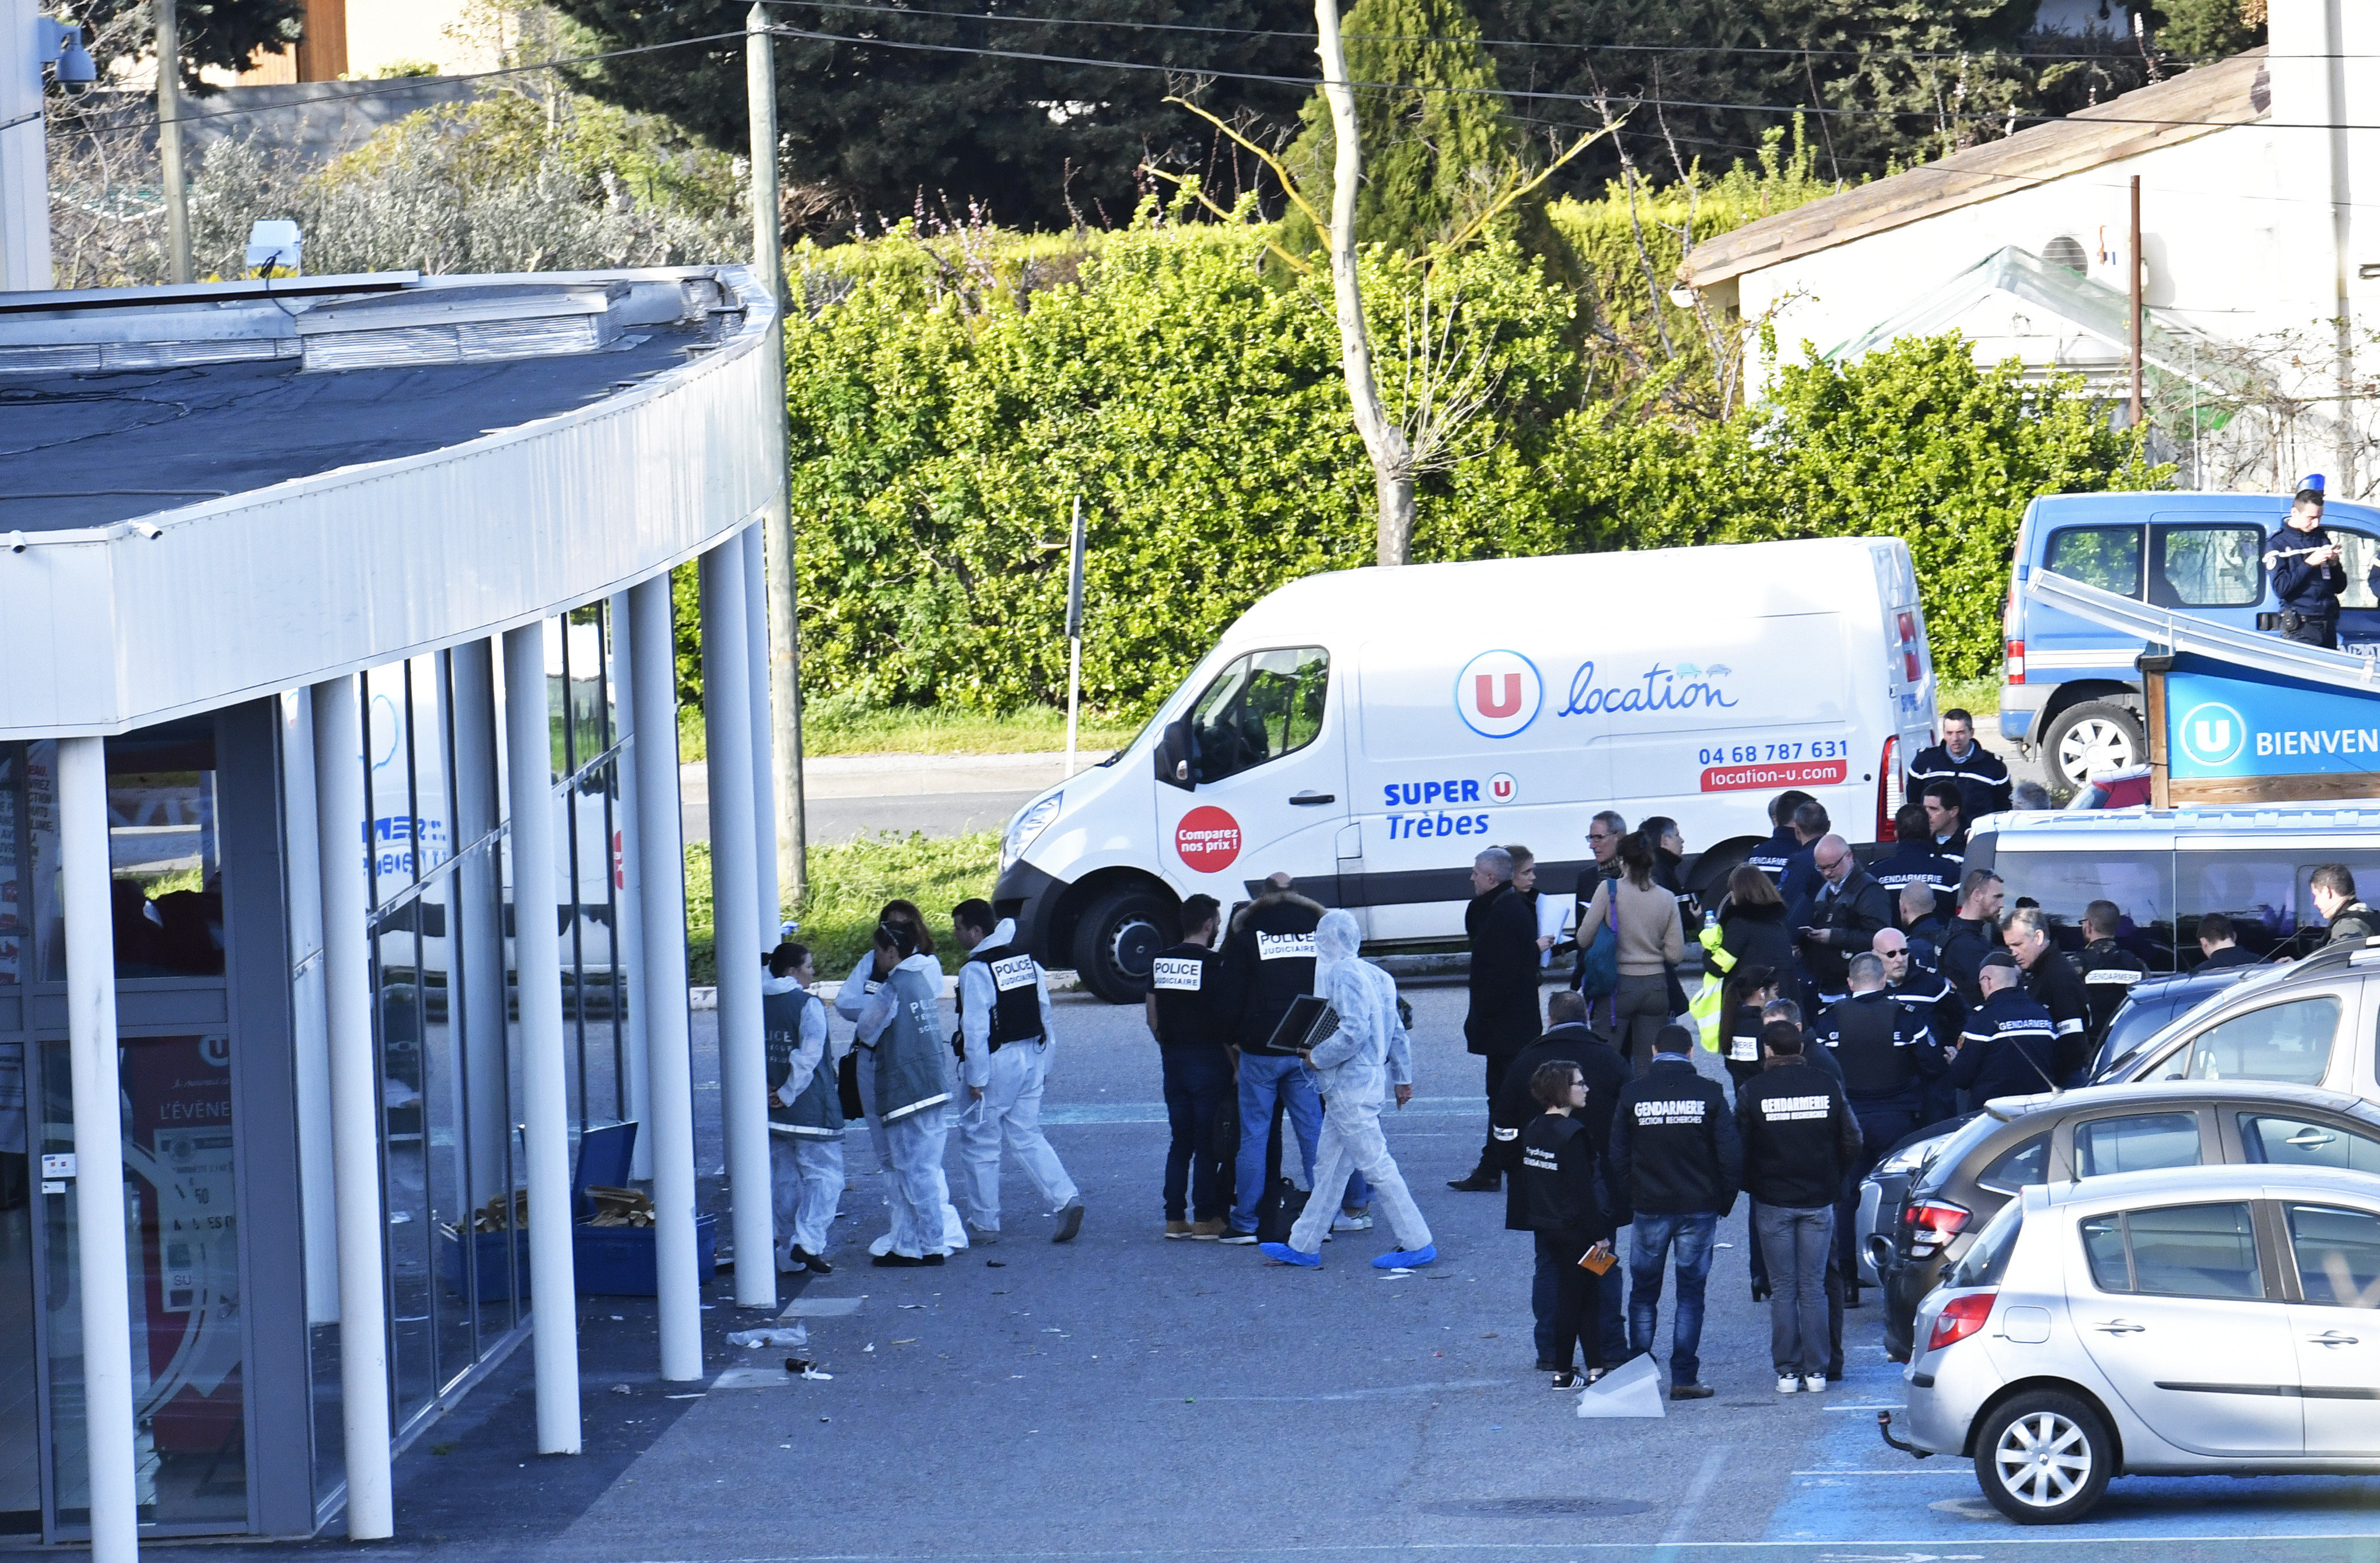 French police officer who took place of hostage dies of gunshot wounds